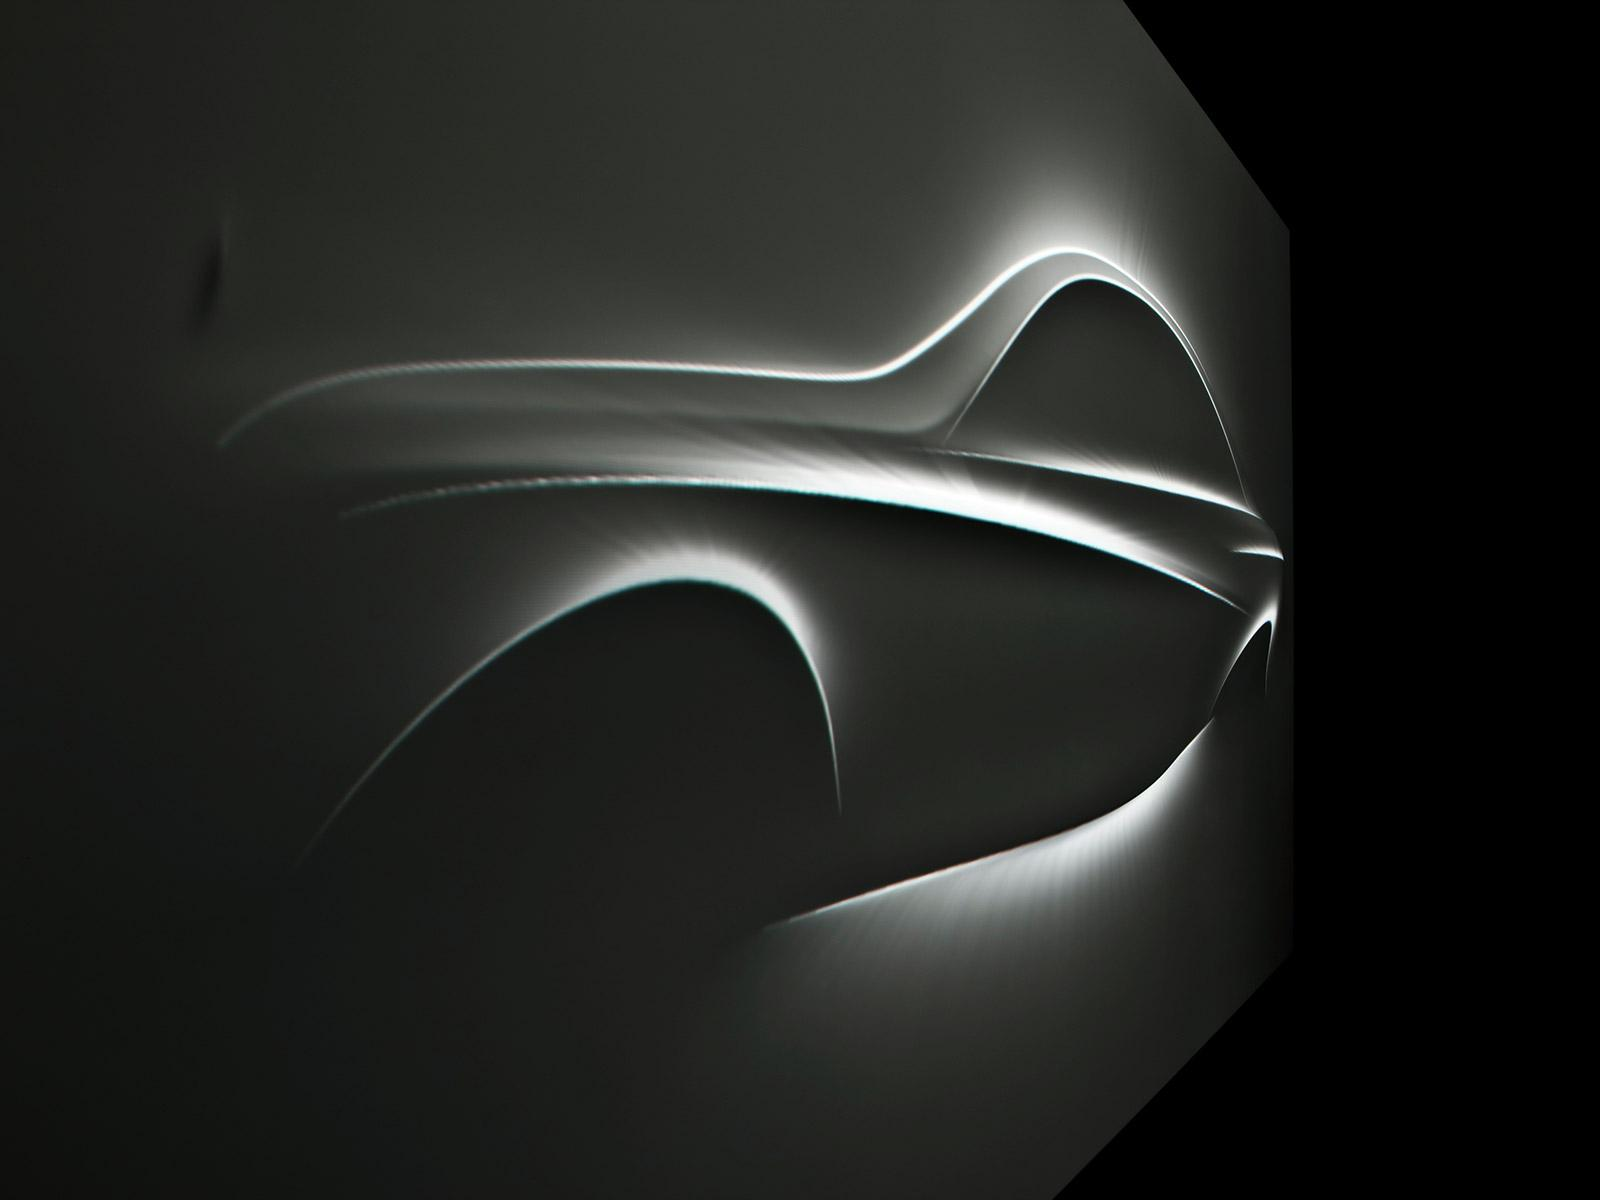 Mercedes-Benz Aesthetics S design sculpture - Car Body Design